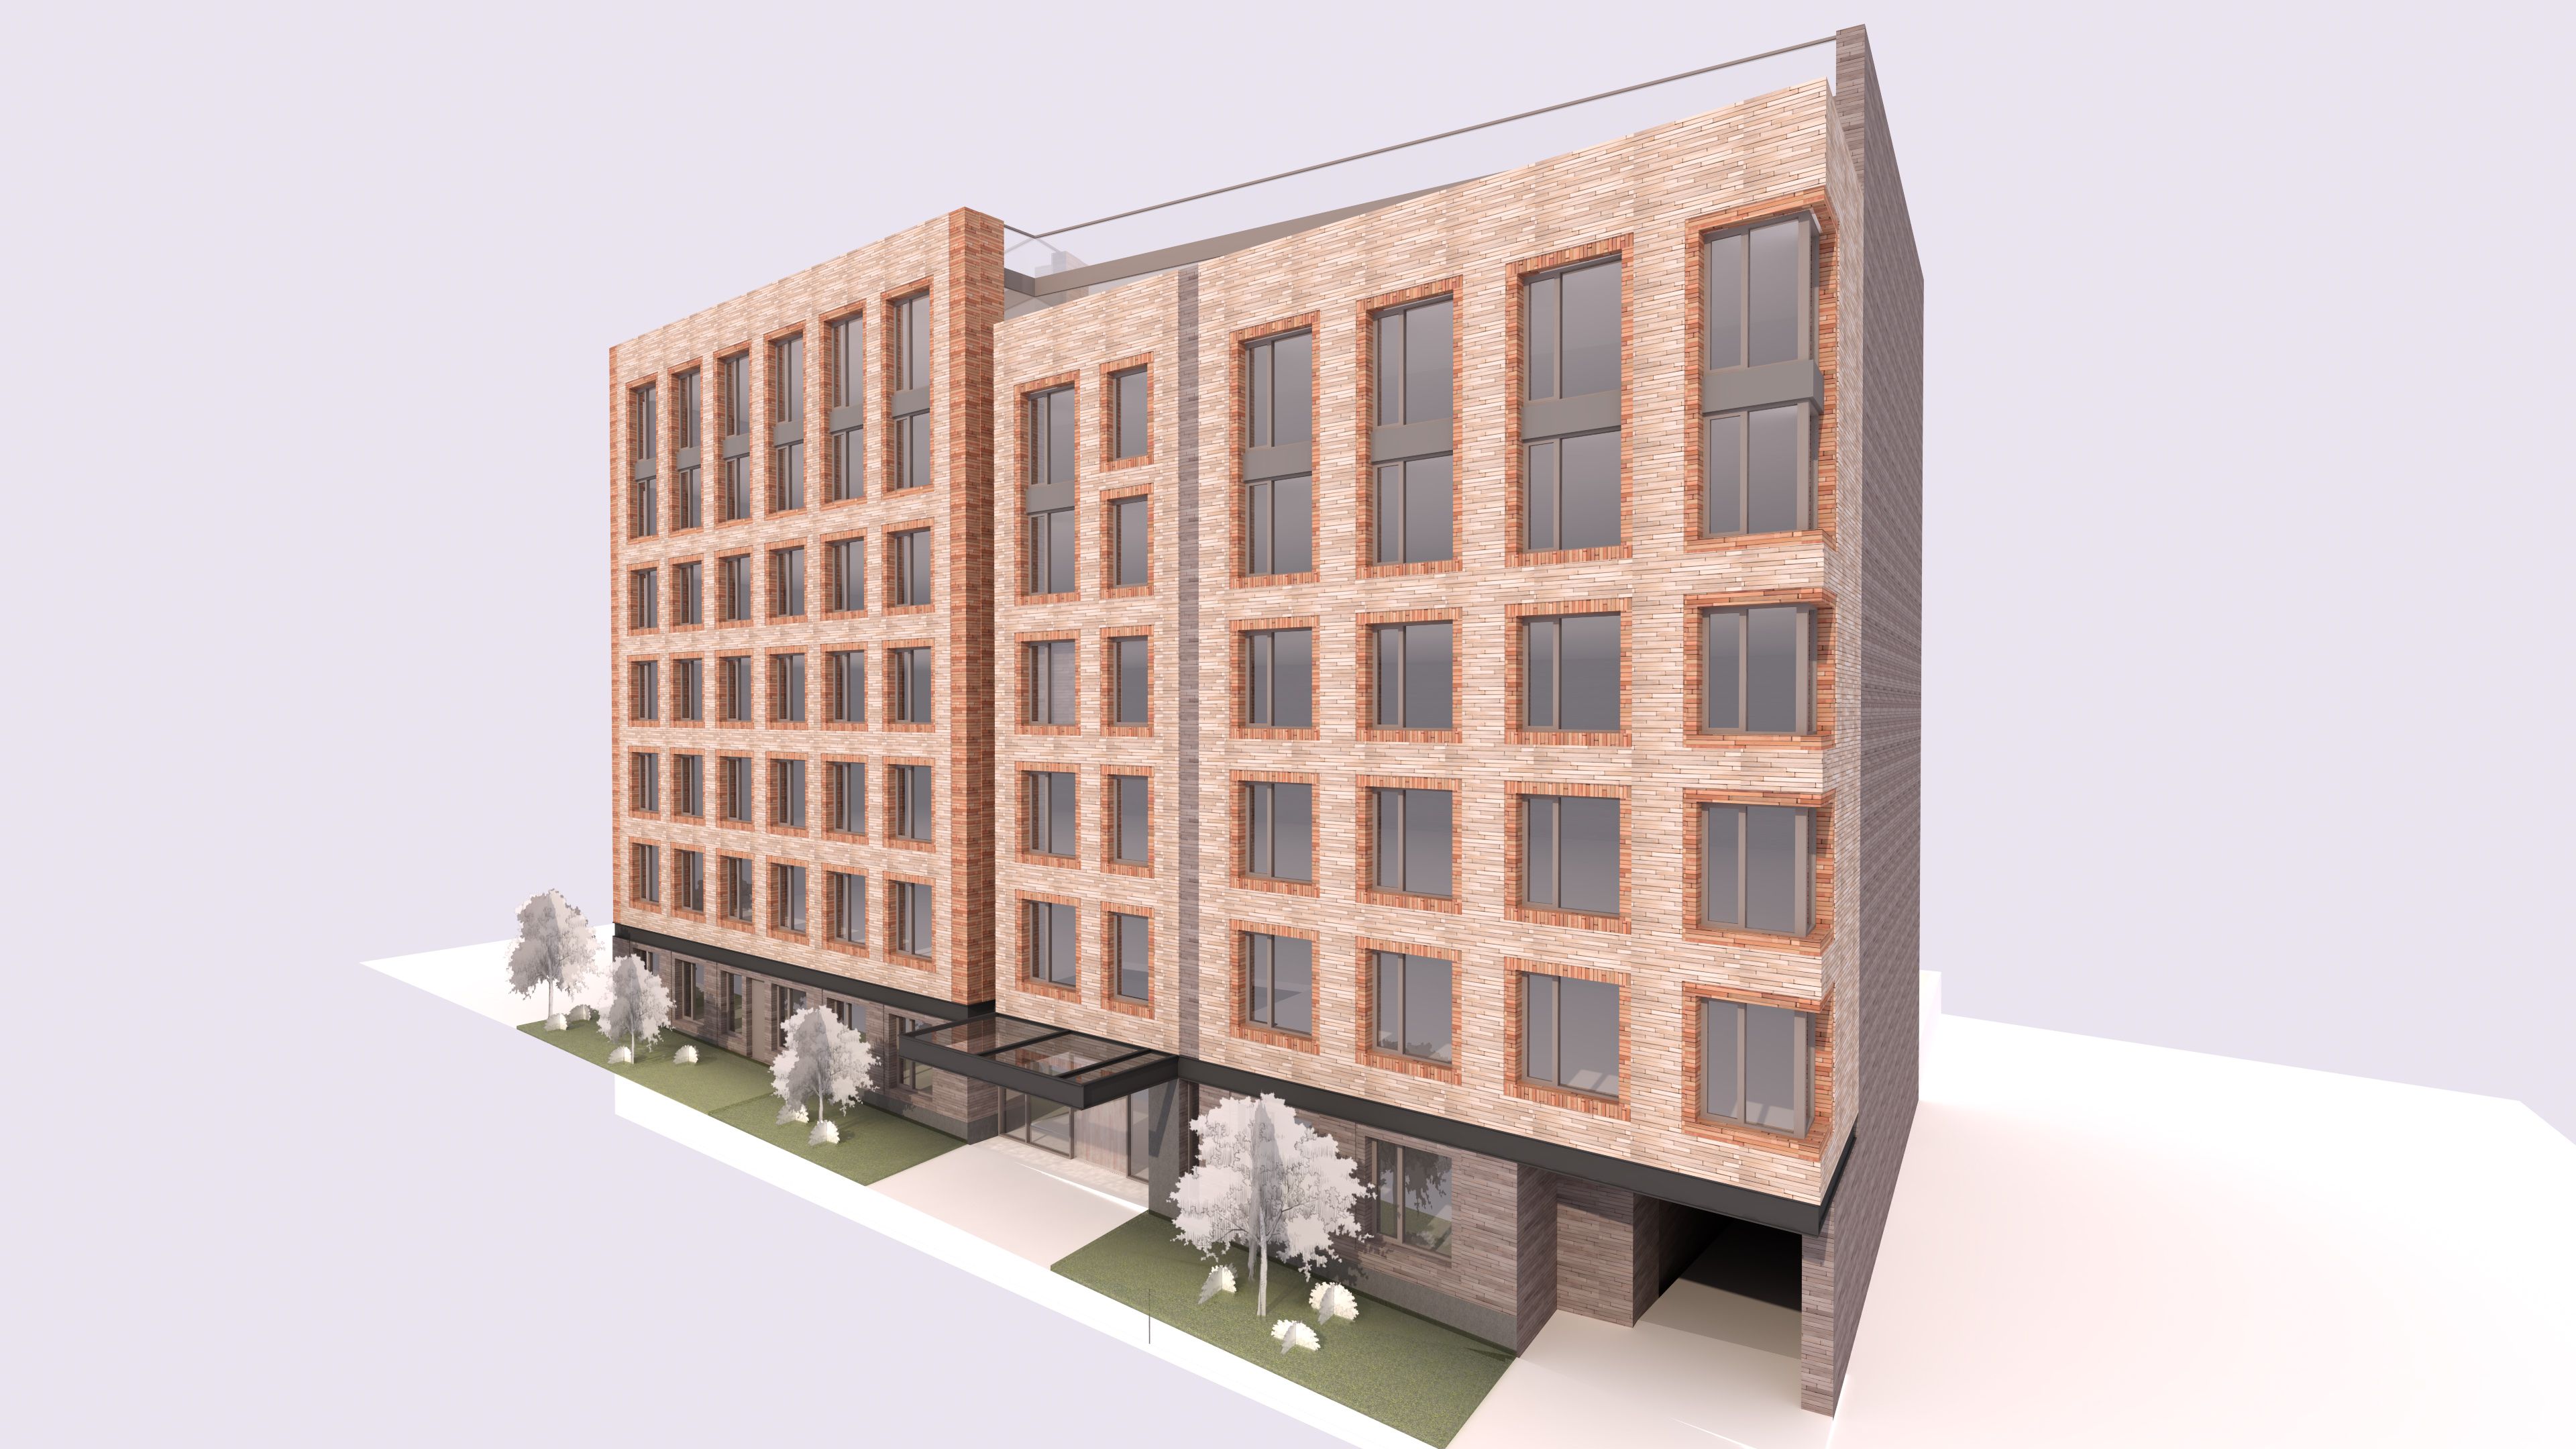 3128 Henry Hudson Parkway, rendering courtesy T&R Construction Corporation